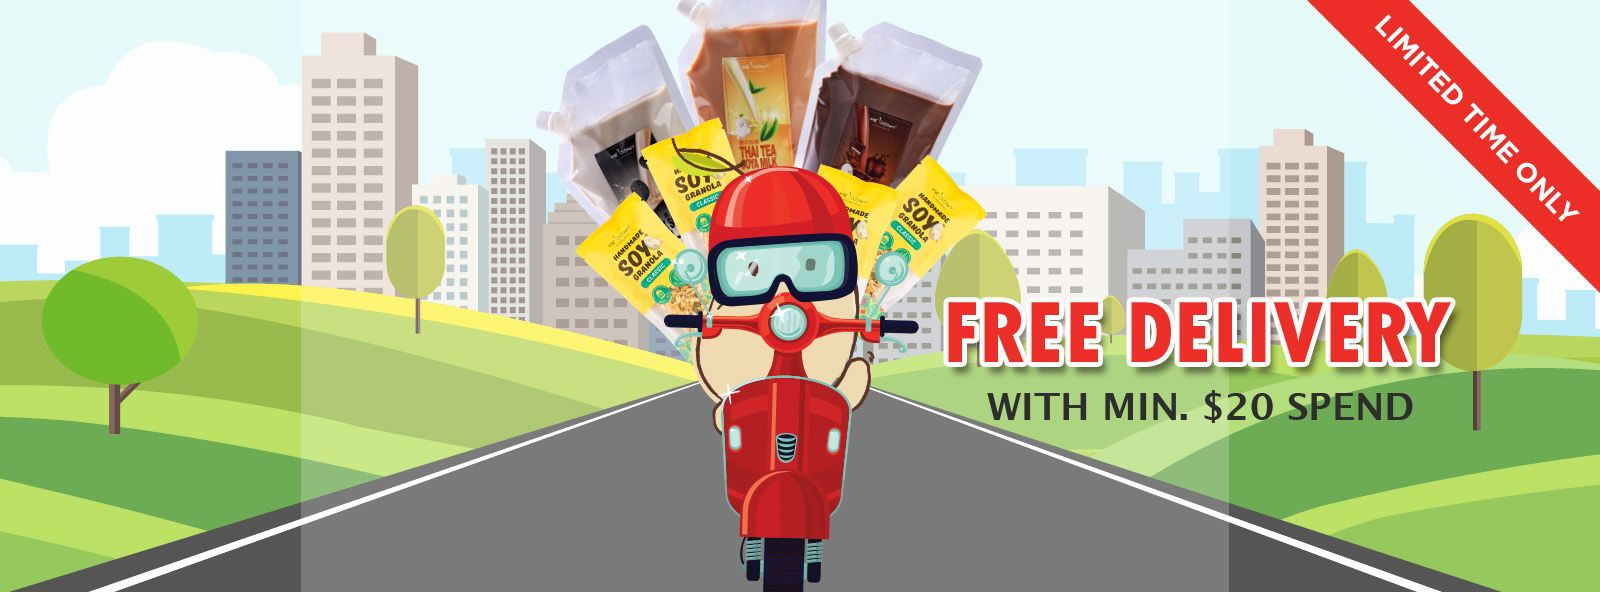 Home Delivery 20 Free